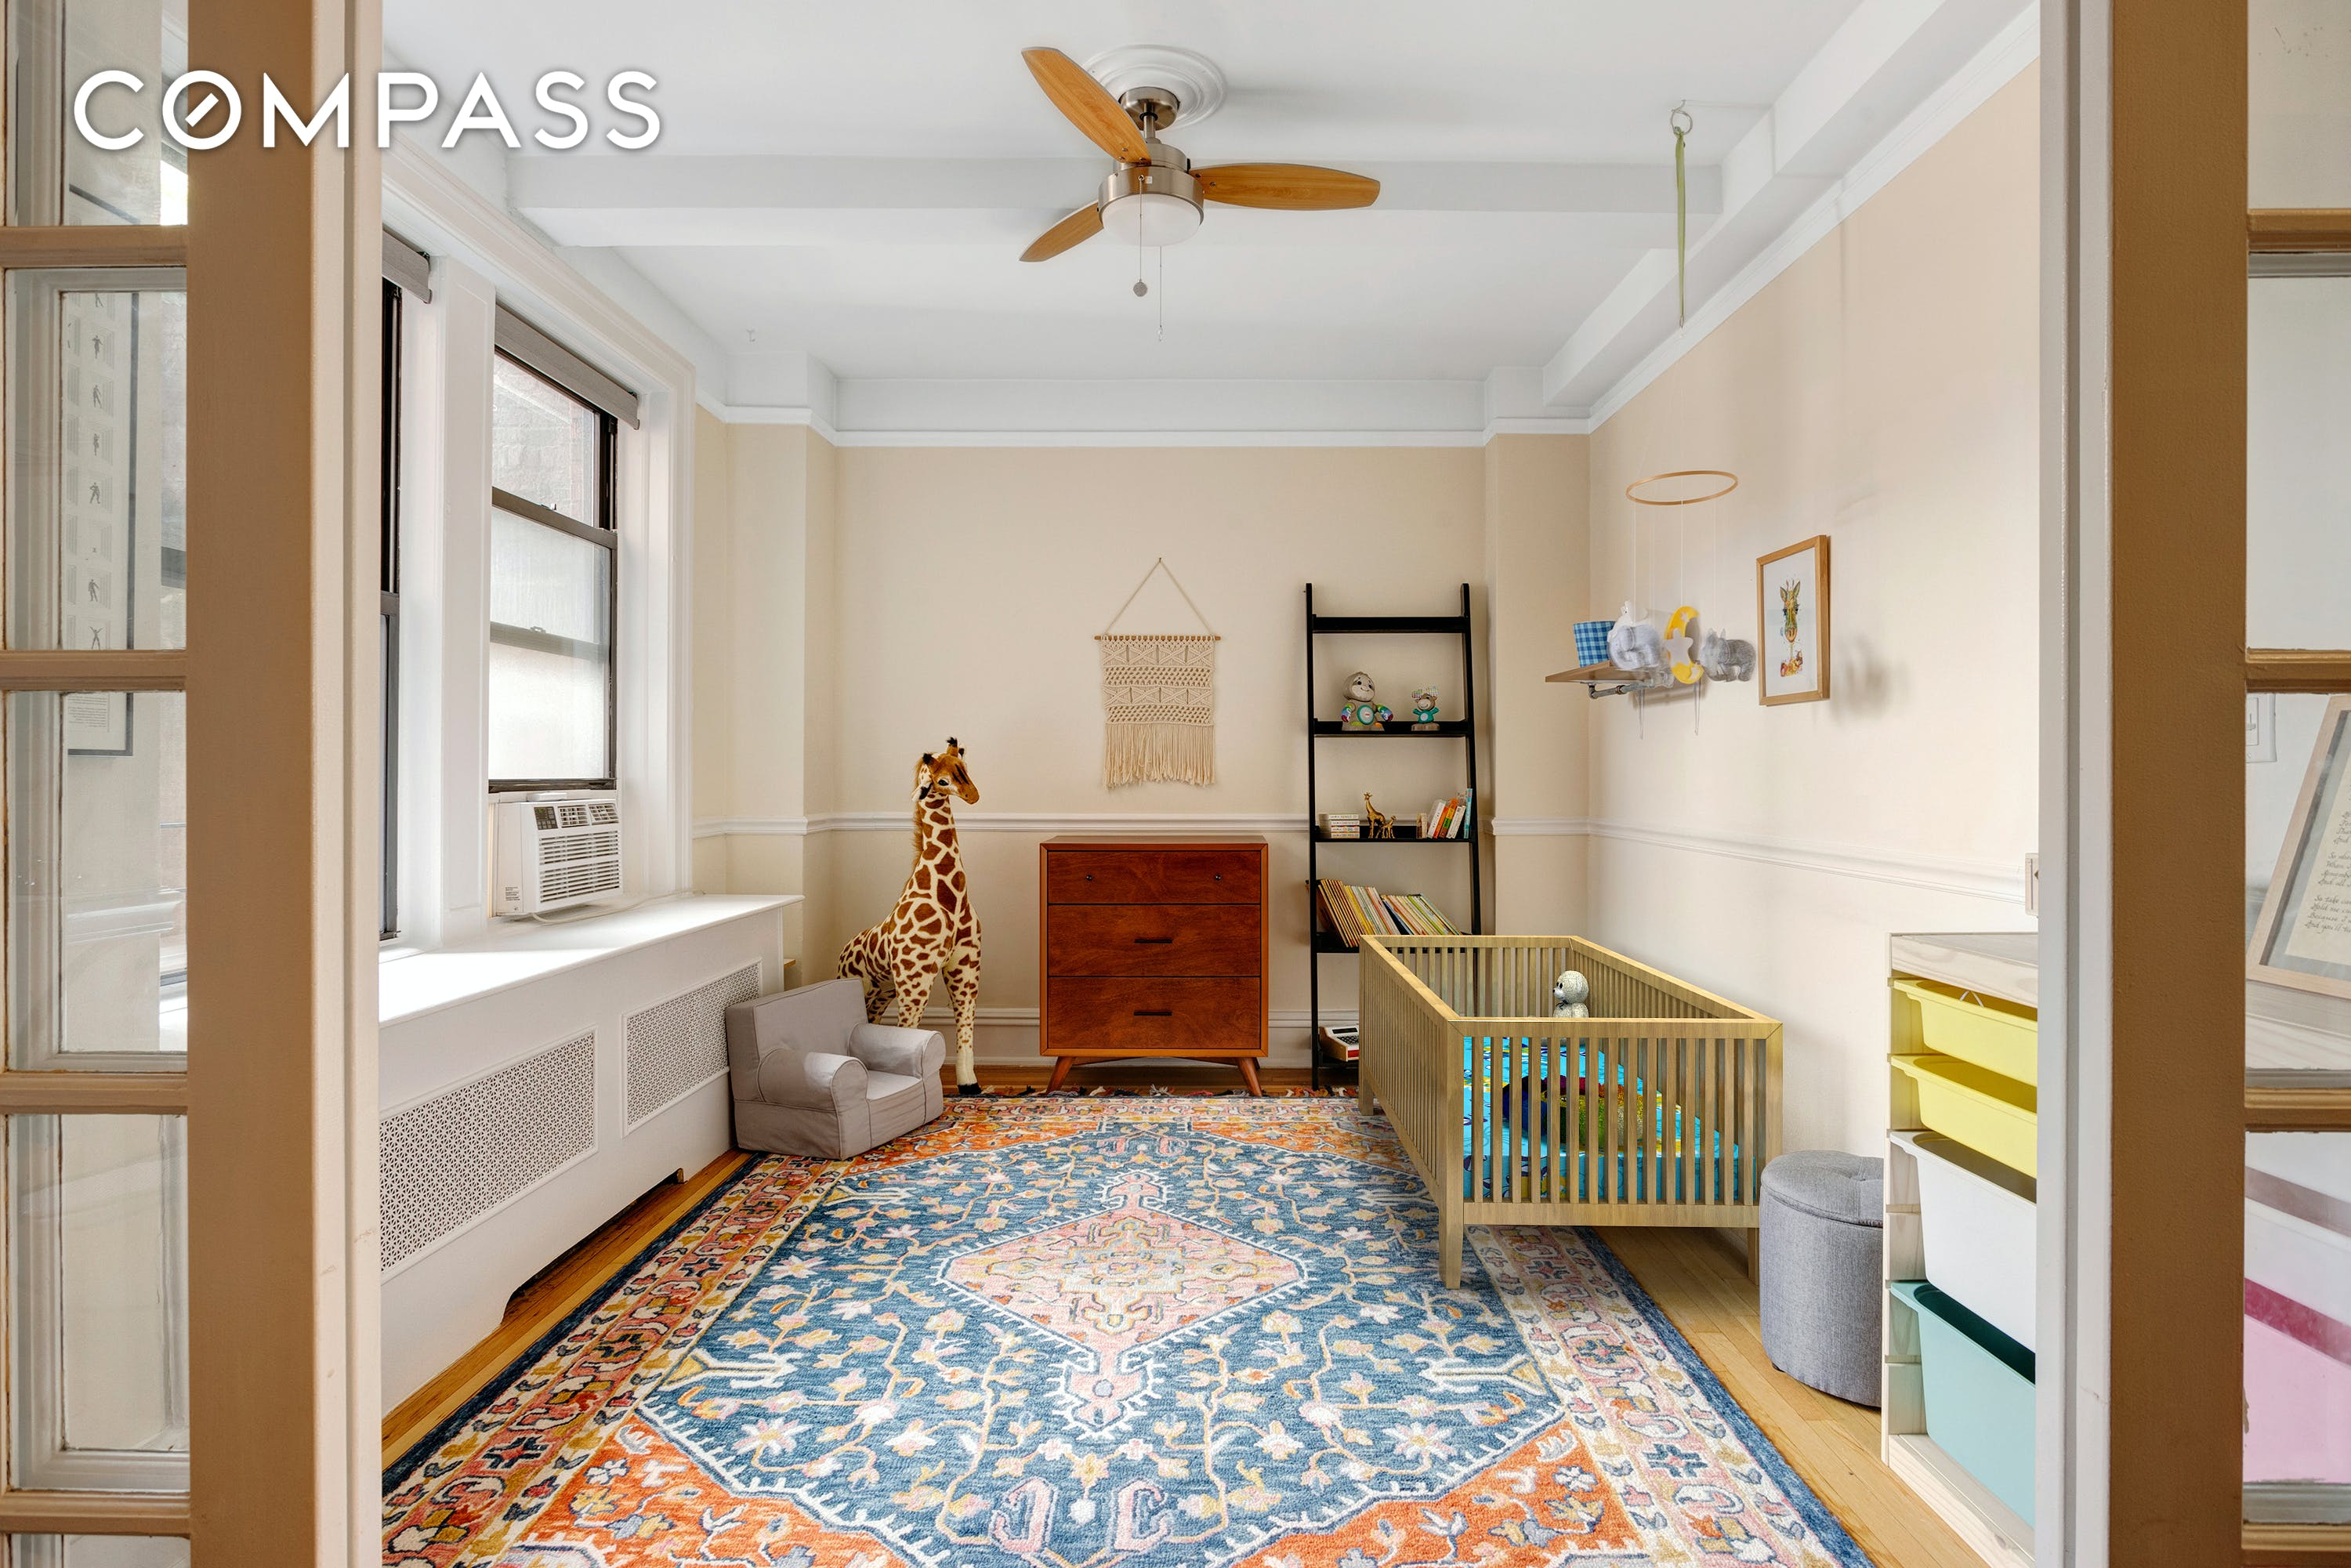 23 West 73rd Street Upper West Side New York NY 10023